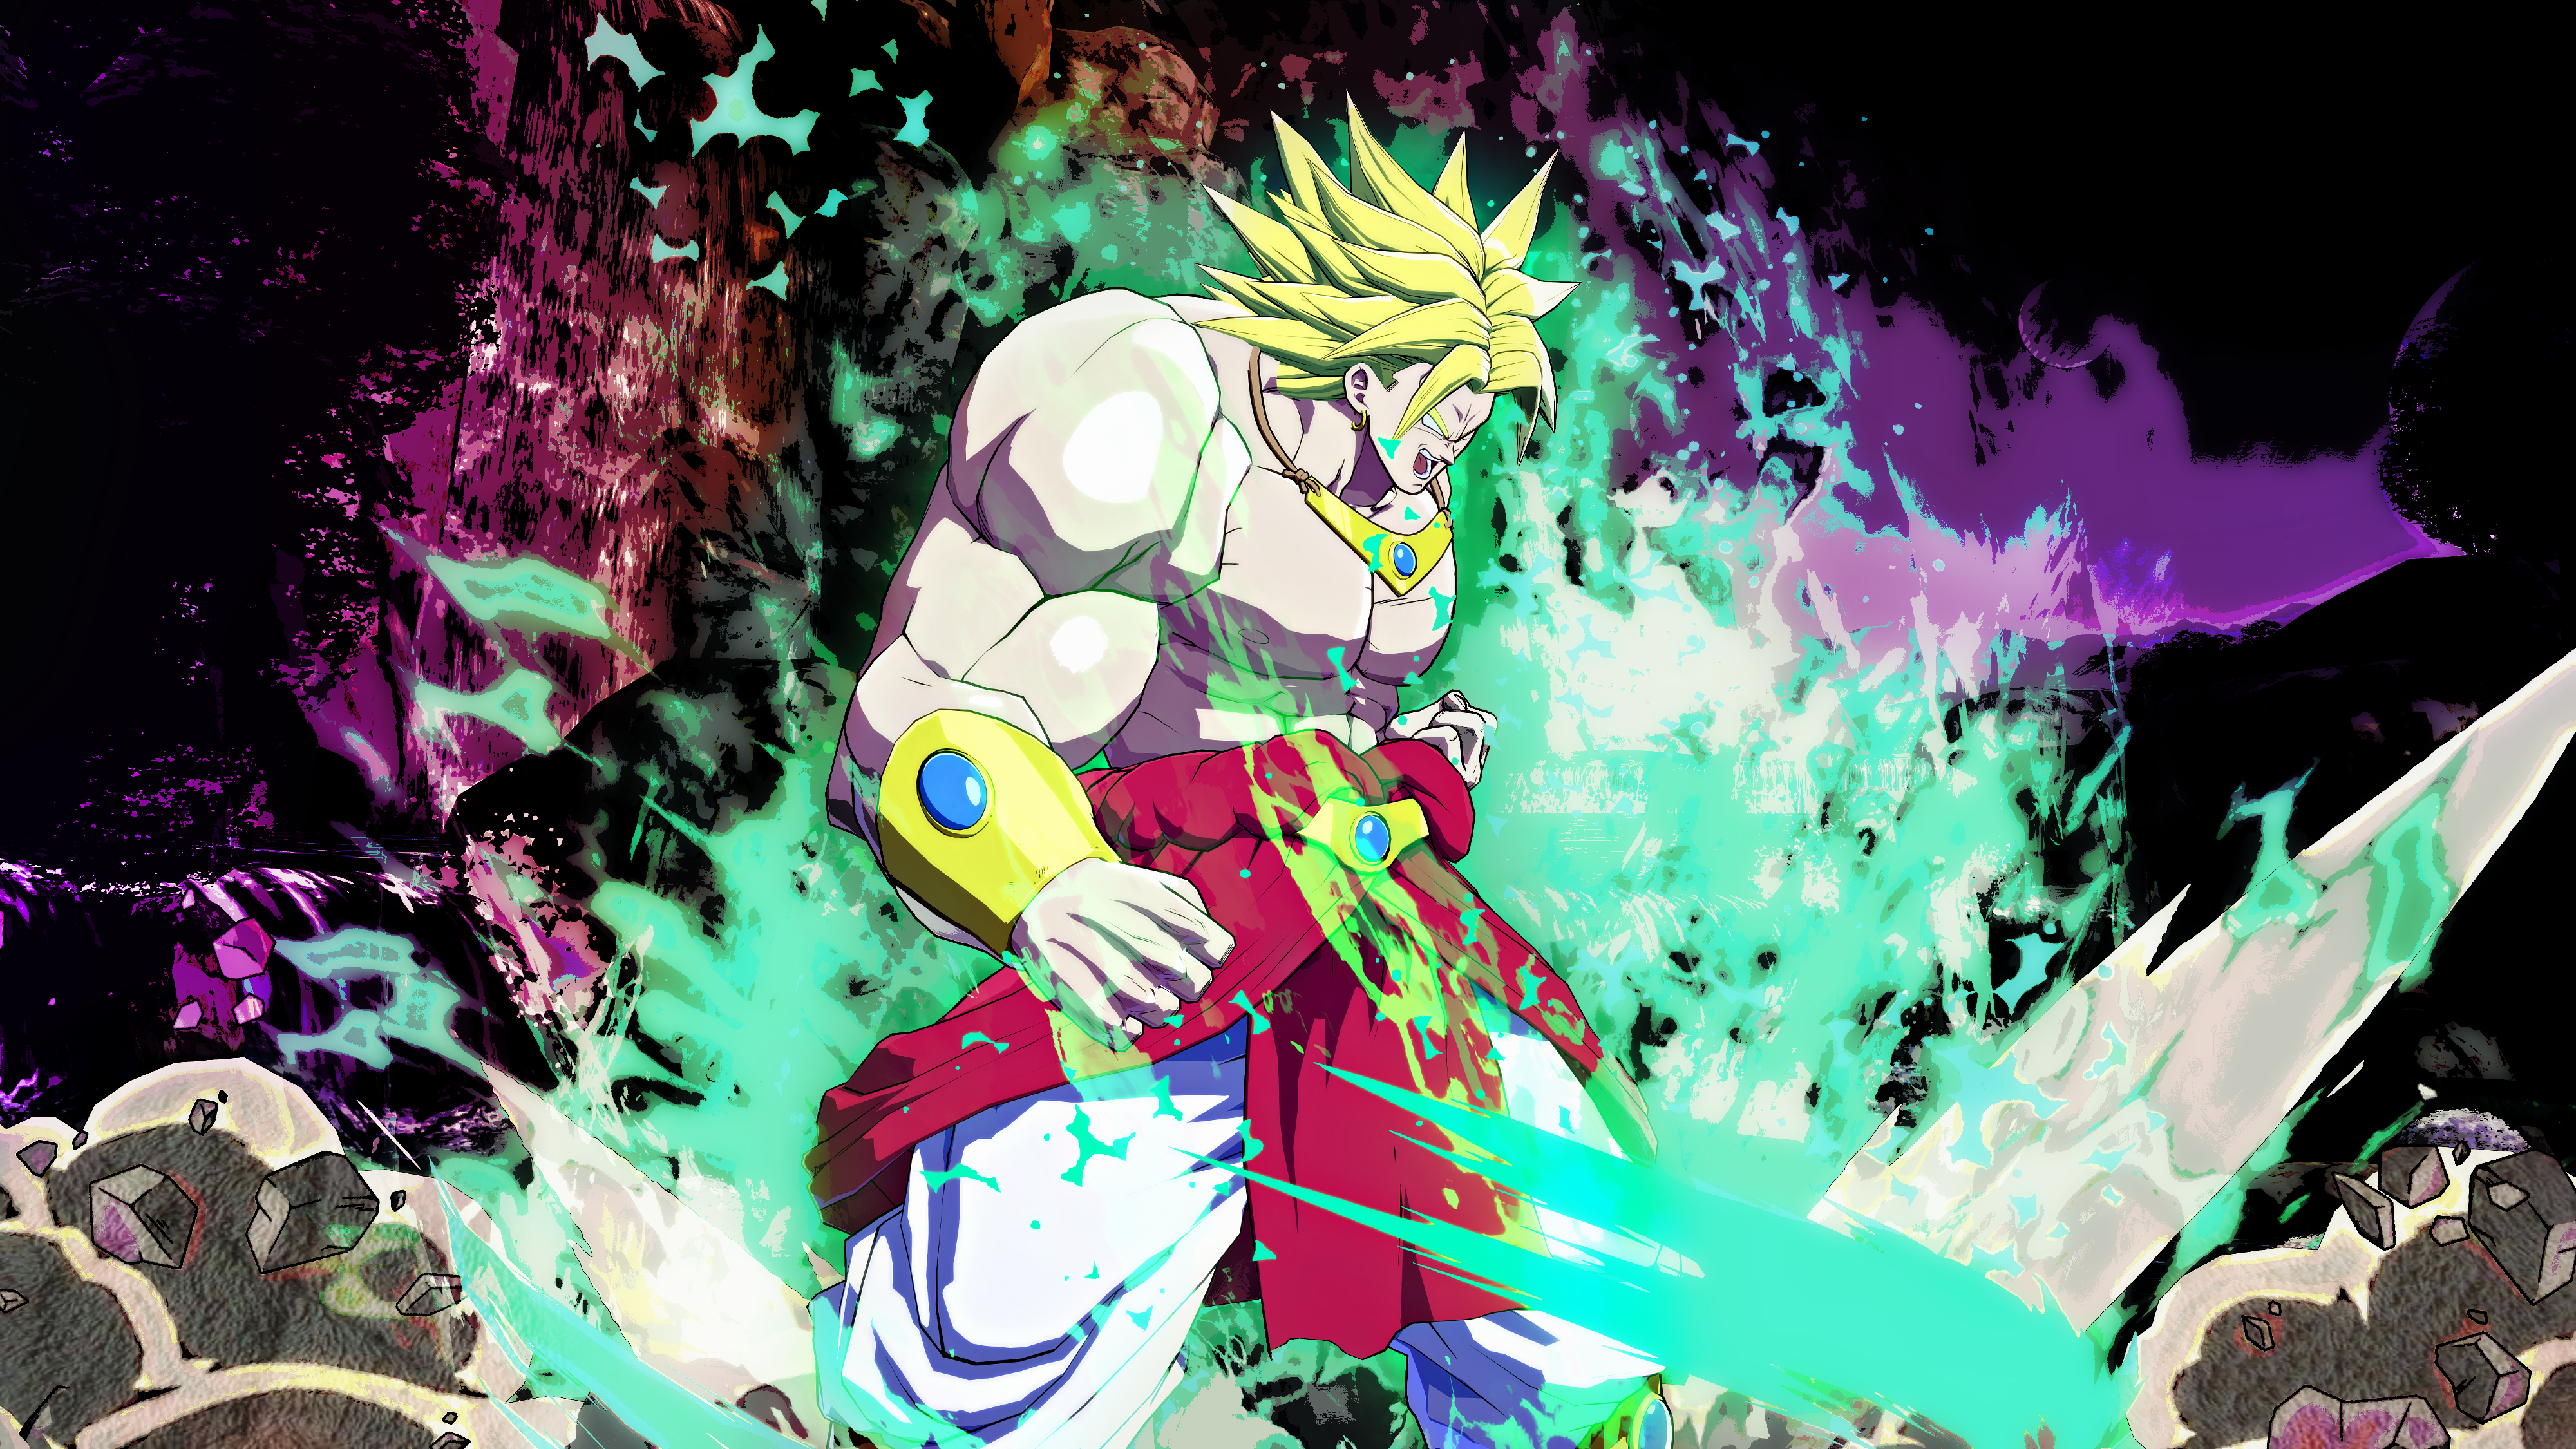 Dragon Ball Z Broly Wallpaper Posted By Christopher Anderson